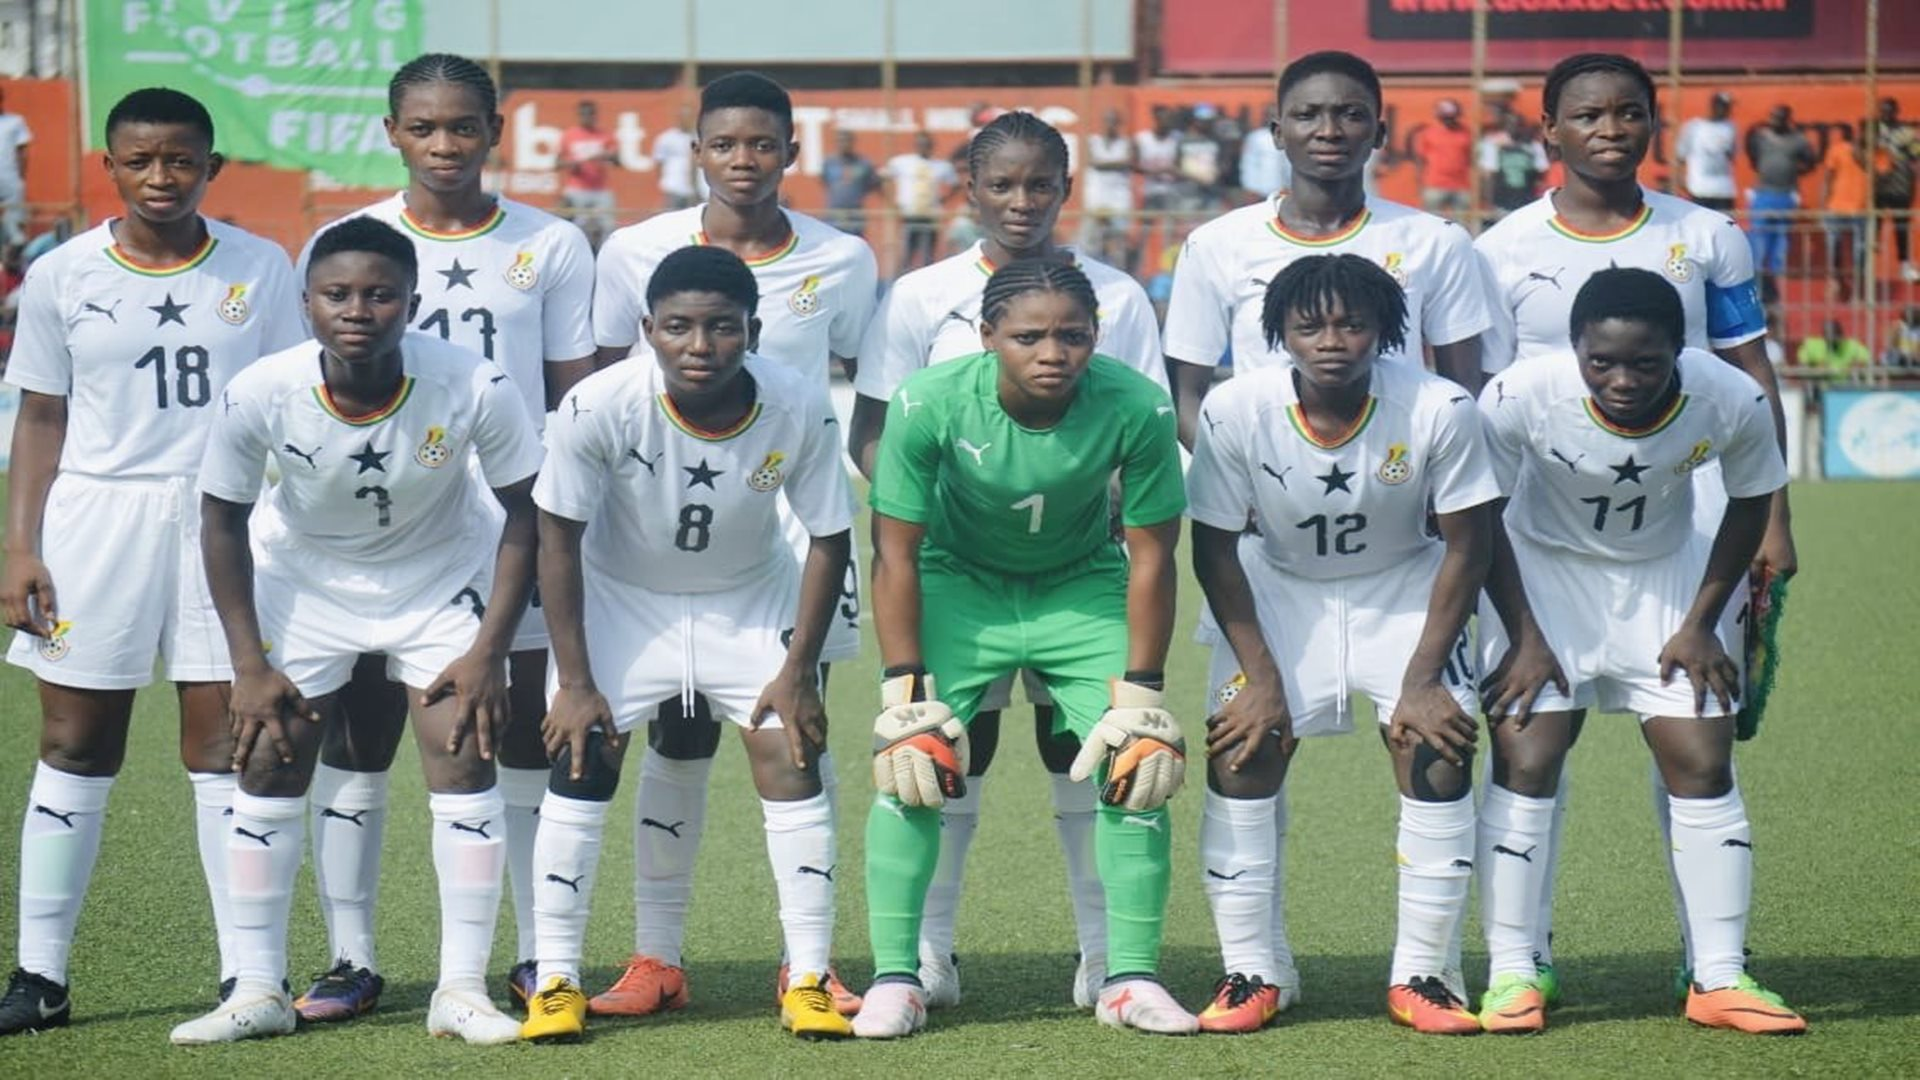 Covid-19: Ghana government advised on national team camp resumption delay